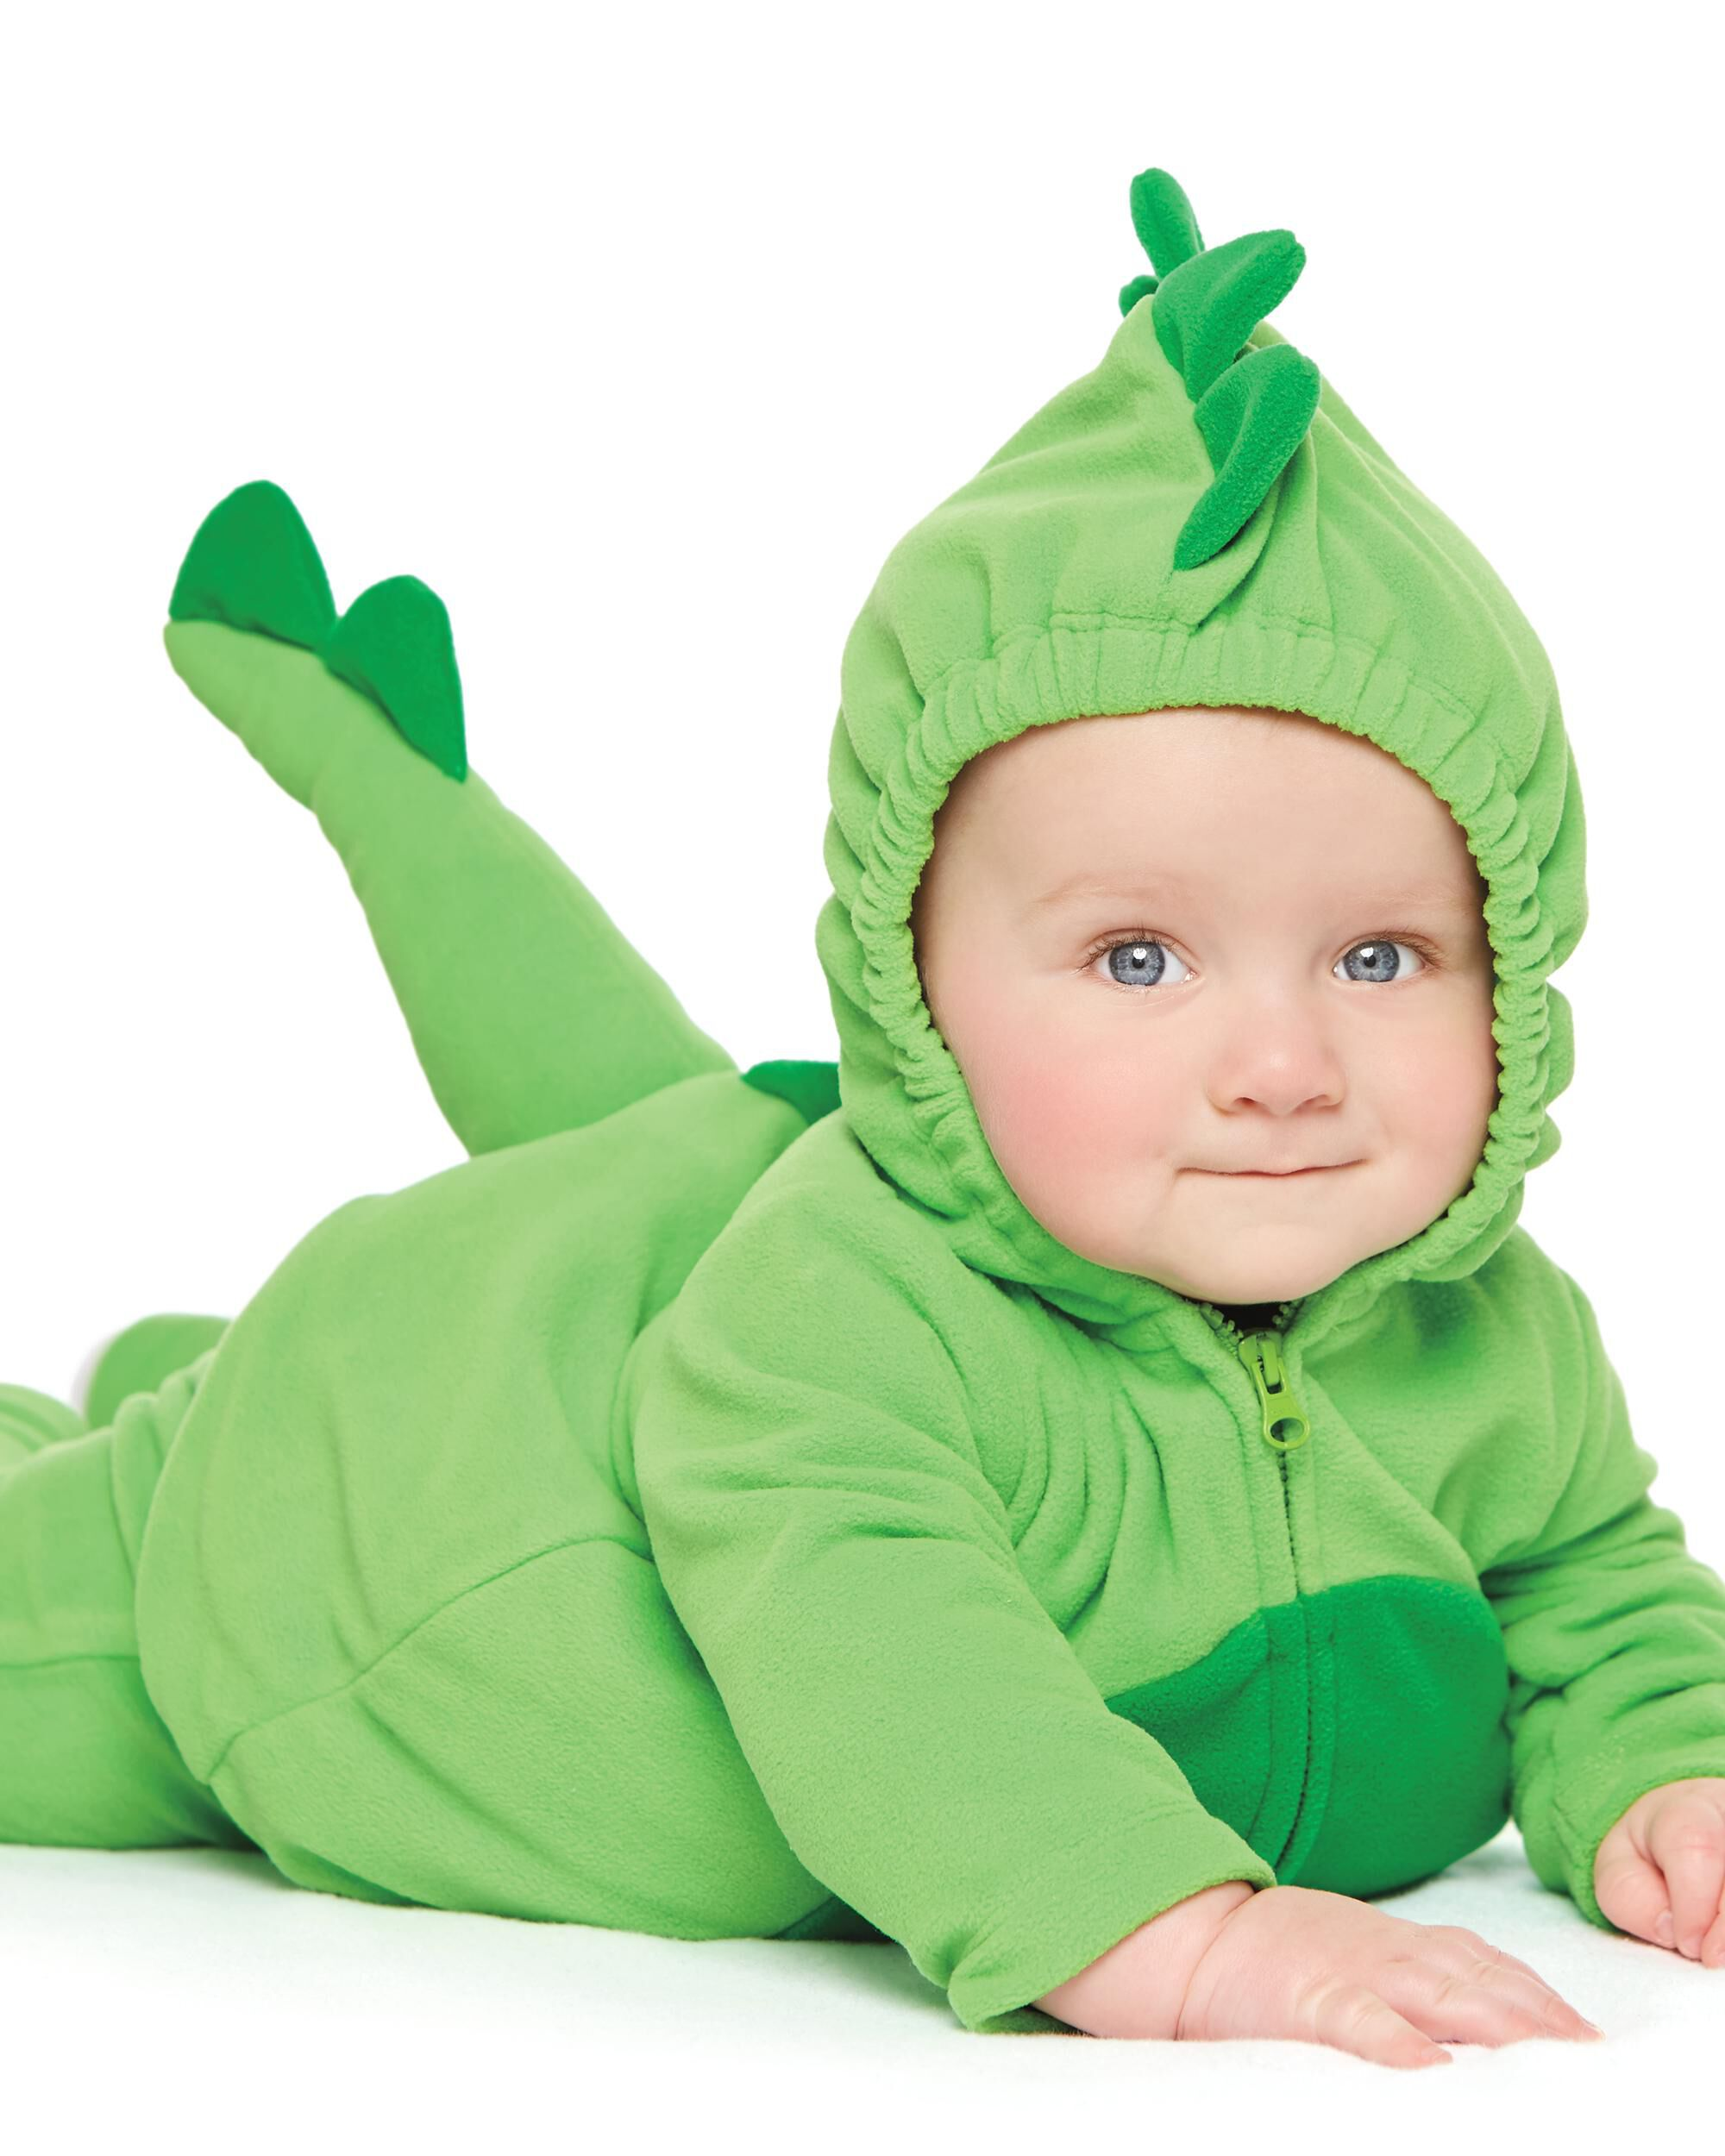 Little Dinosaur Halloween Costume ...  sc 1 st  Carteru0027s & Little Dinosaur Halloween Costume | Carters.com